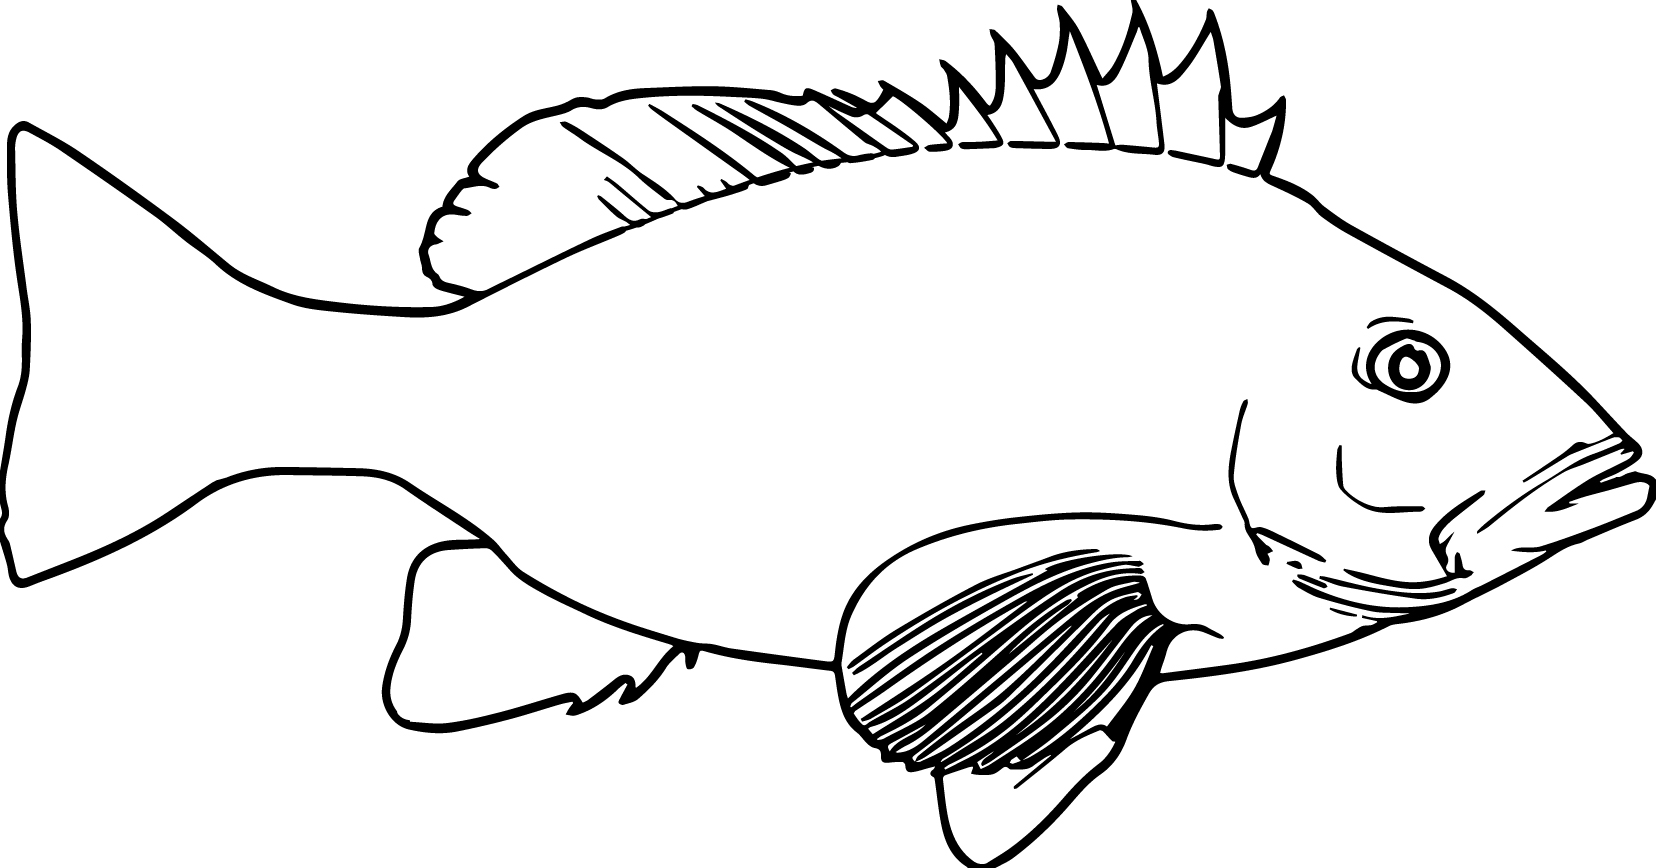 Cute Chipmunk Coloring Pages